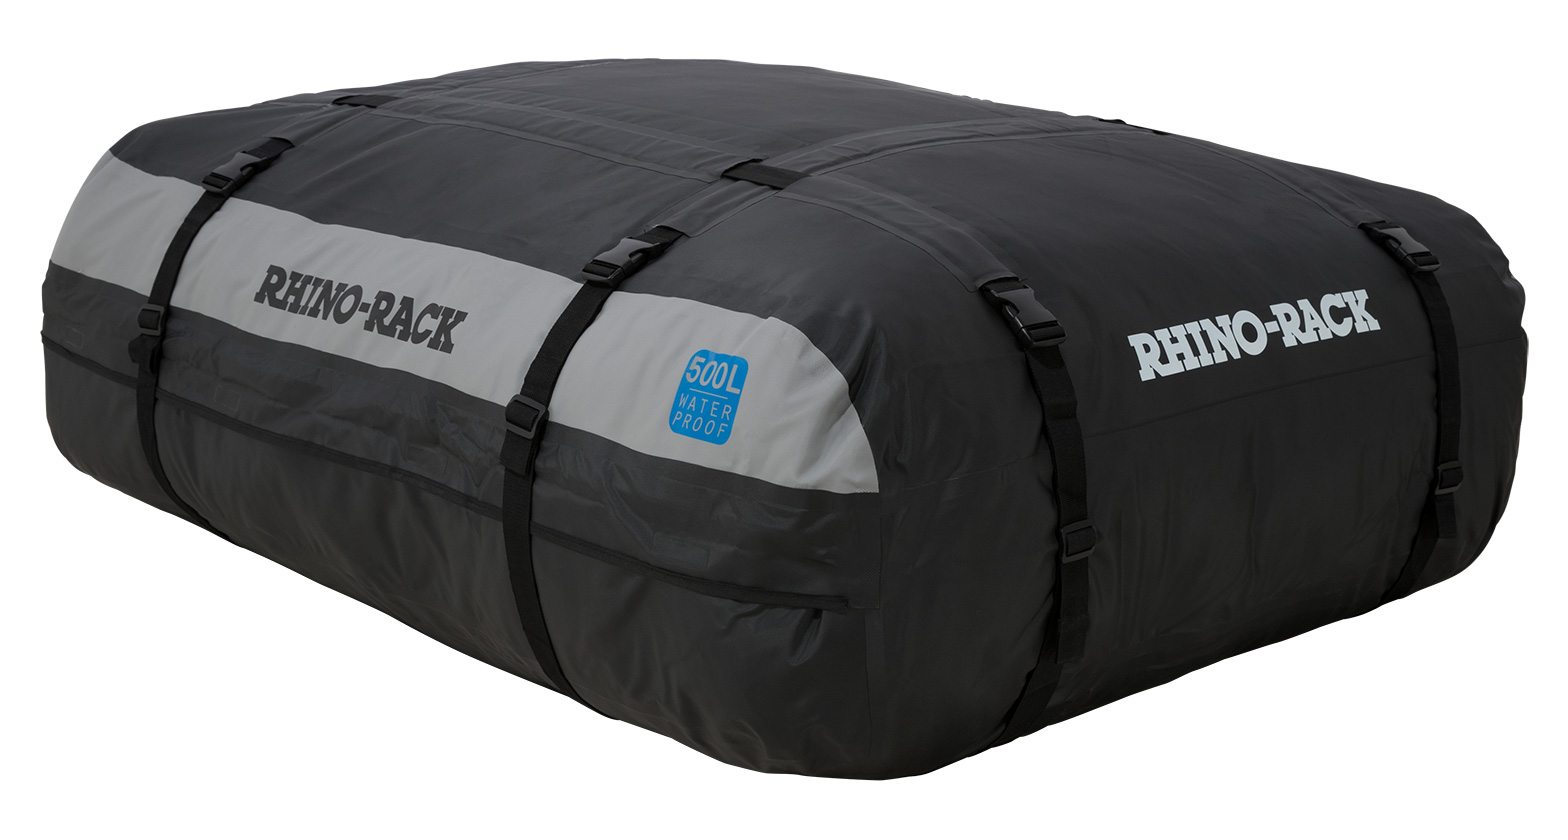 Weatherproof Luggage Bag (500L)